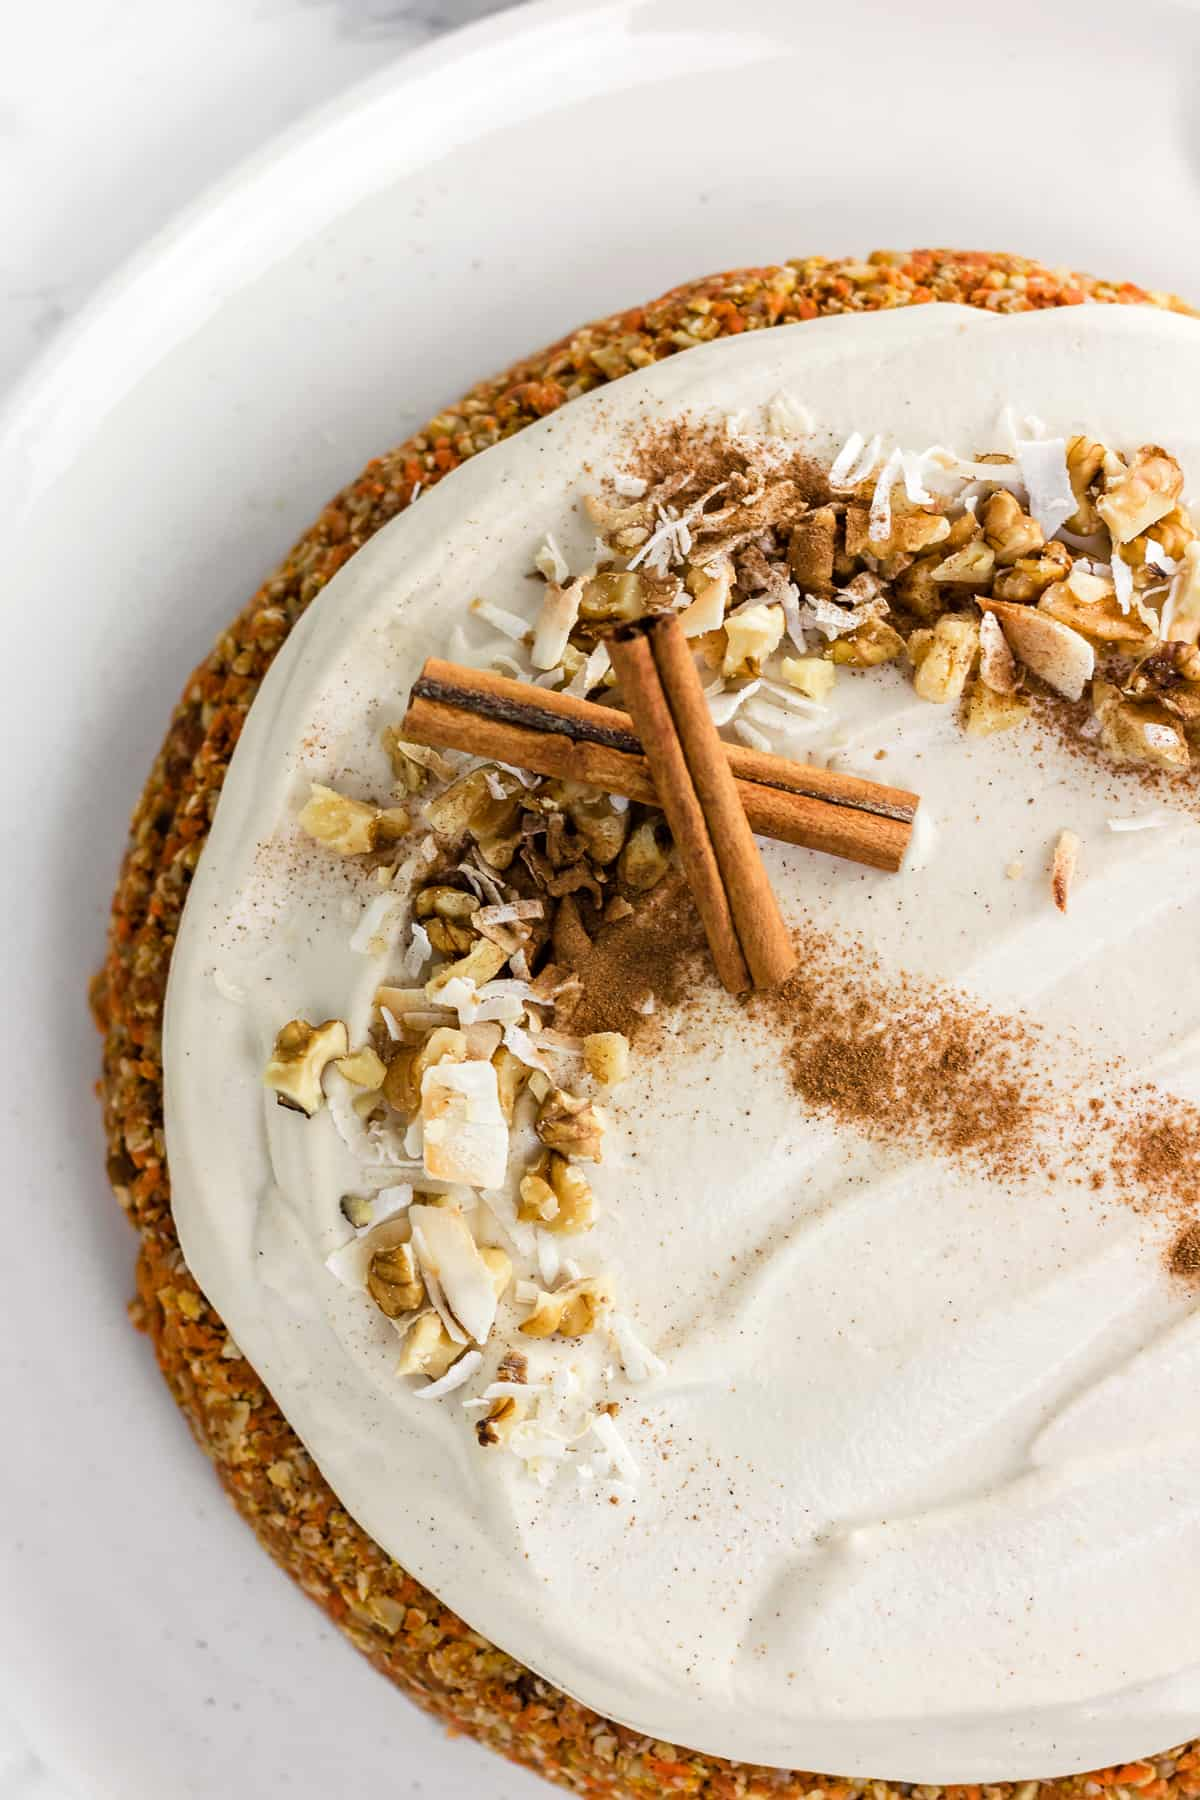 """No baking required for this delicious and healthy Raw Carrot Cake with Cashew """"Cream Cheese"""" Frosting.  It's vegan, gluten free, and refined sugar free!"""